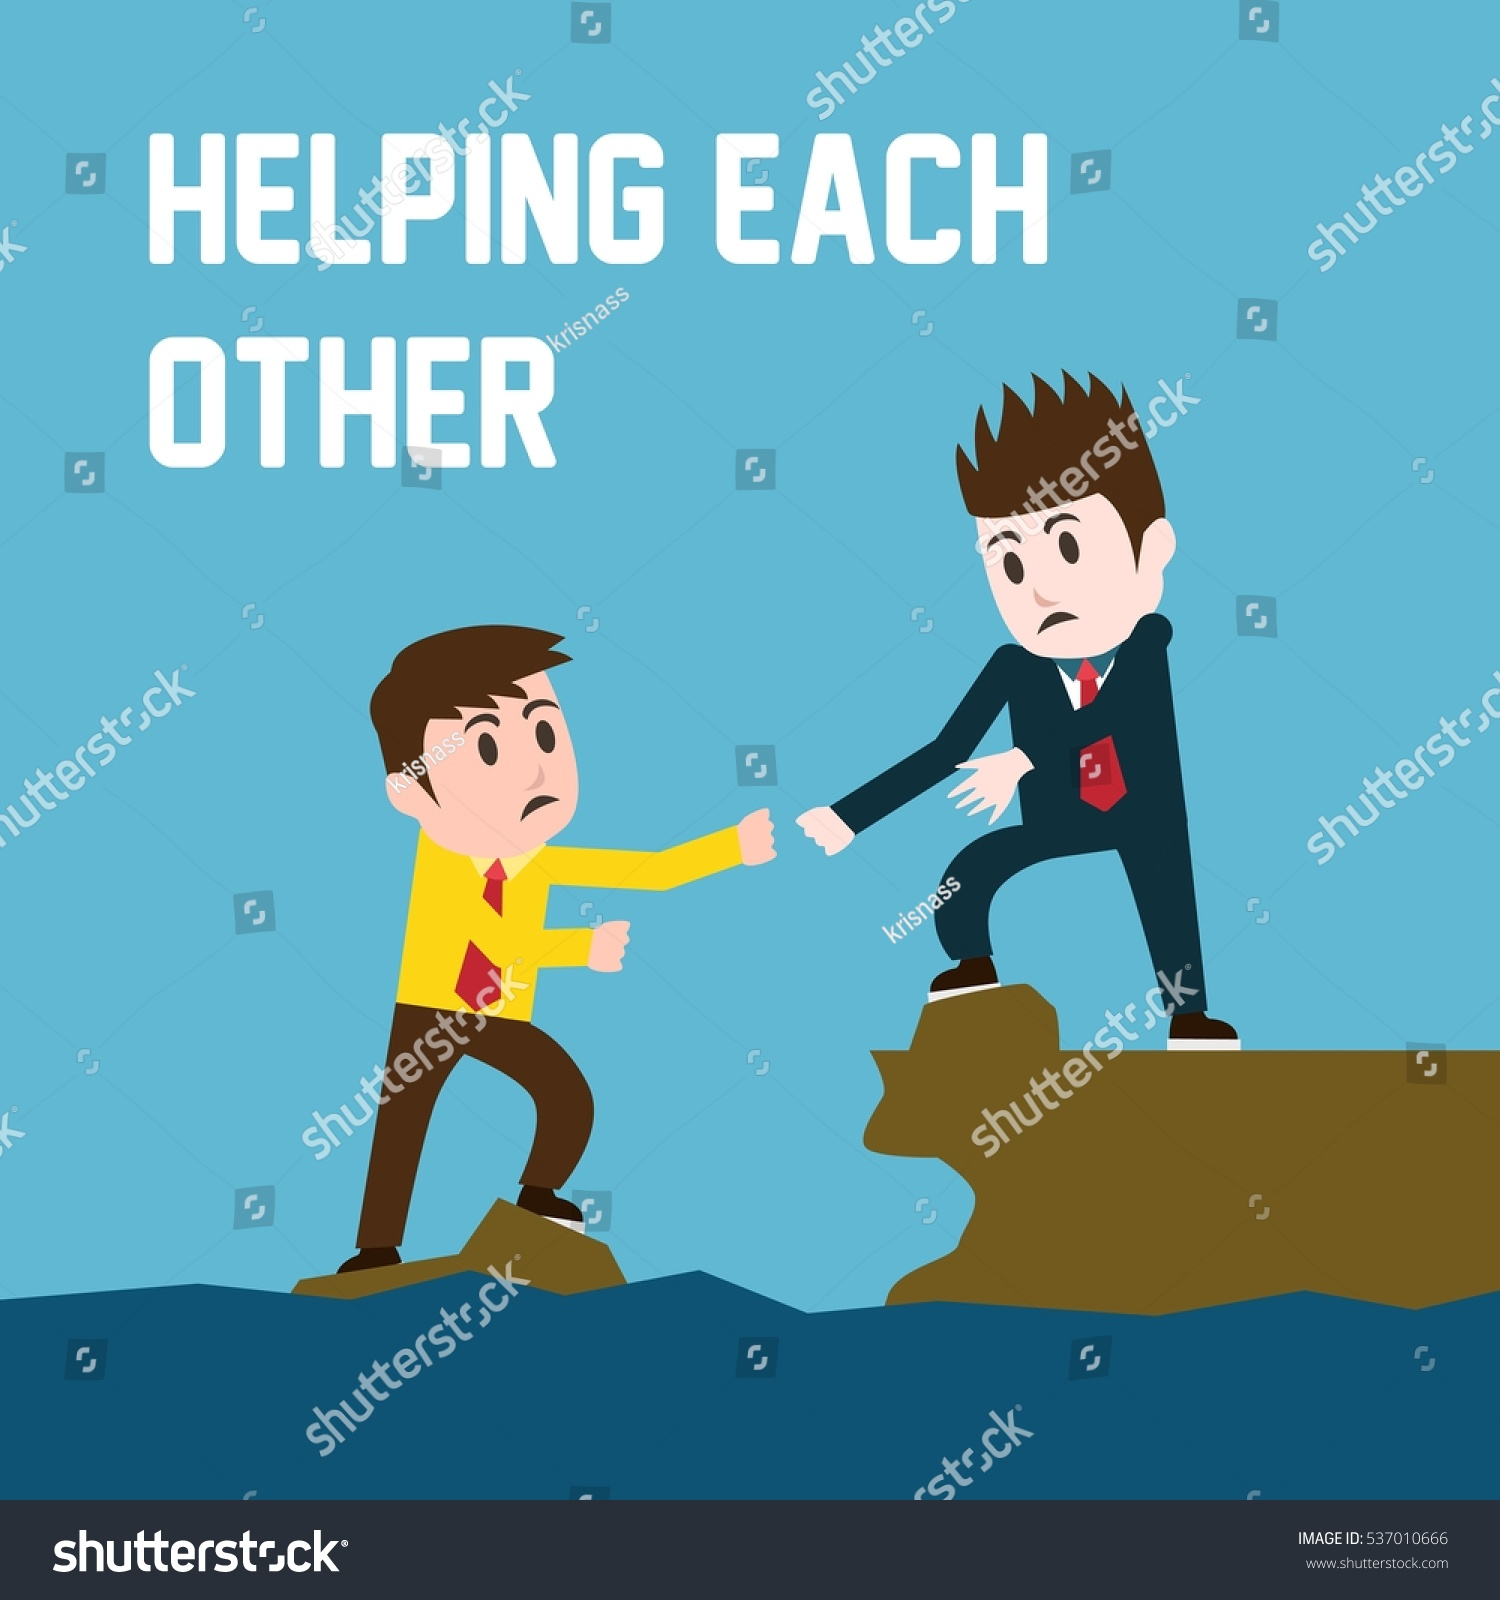 Helping Each Other: Helping Each Other Poster Stock Vector 537010666